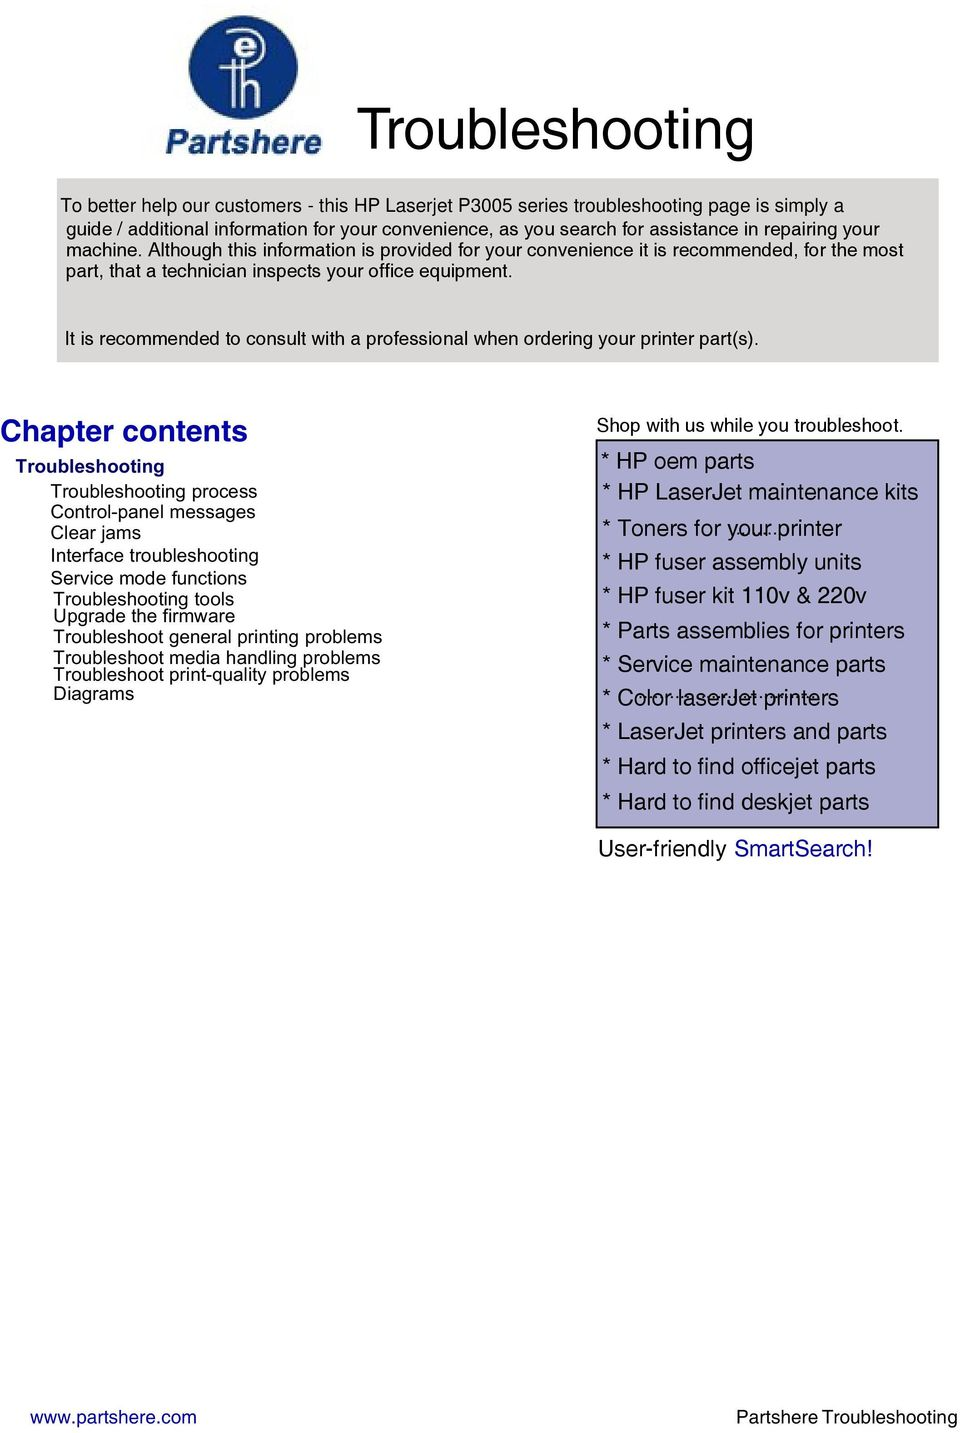 Troubleshooting Chapter Contents Pdf Hp Laserjet 1160 1320 Printer Service Manual It Is Recommended To Consult With A Professional When Ordering Your Parts